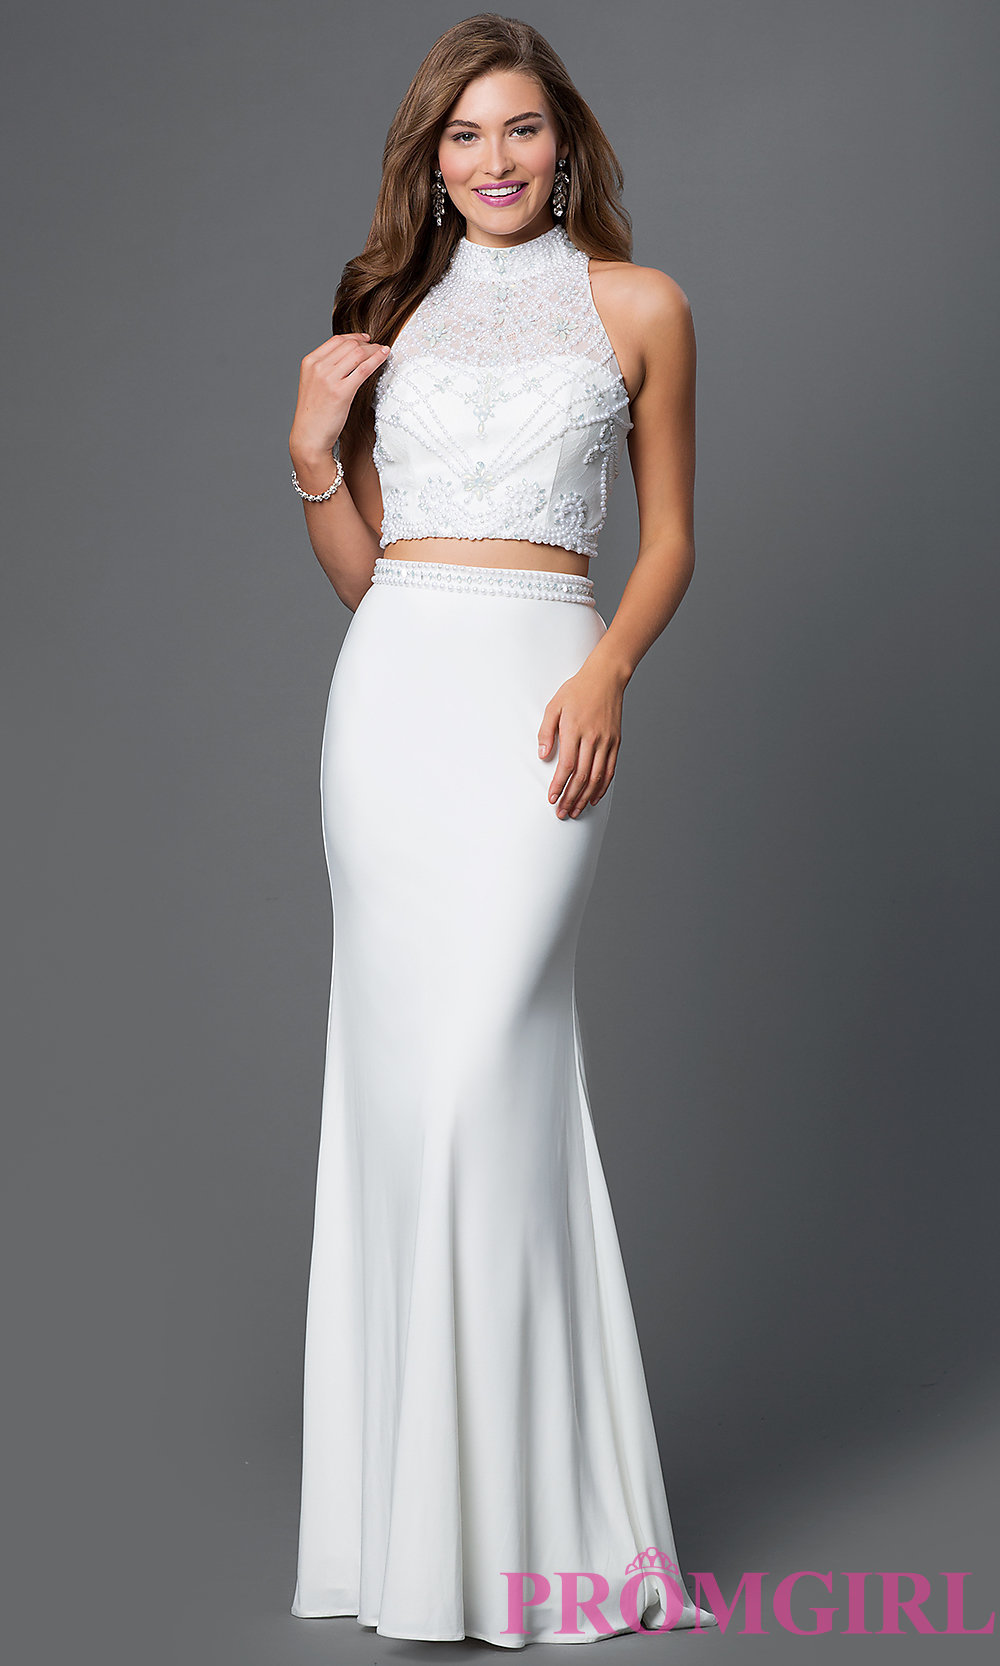 New long prom dresses and gowns cheap wedding dresses for Formal long dresses for weddings